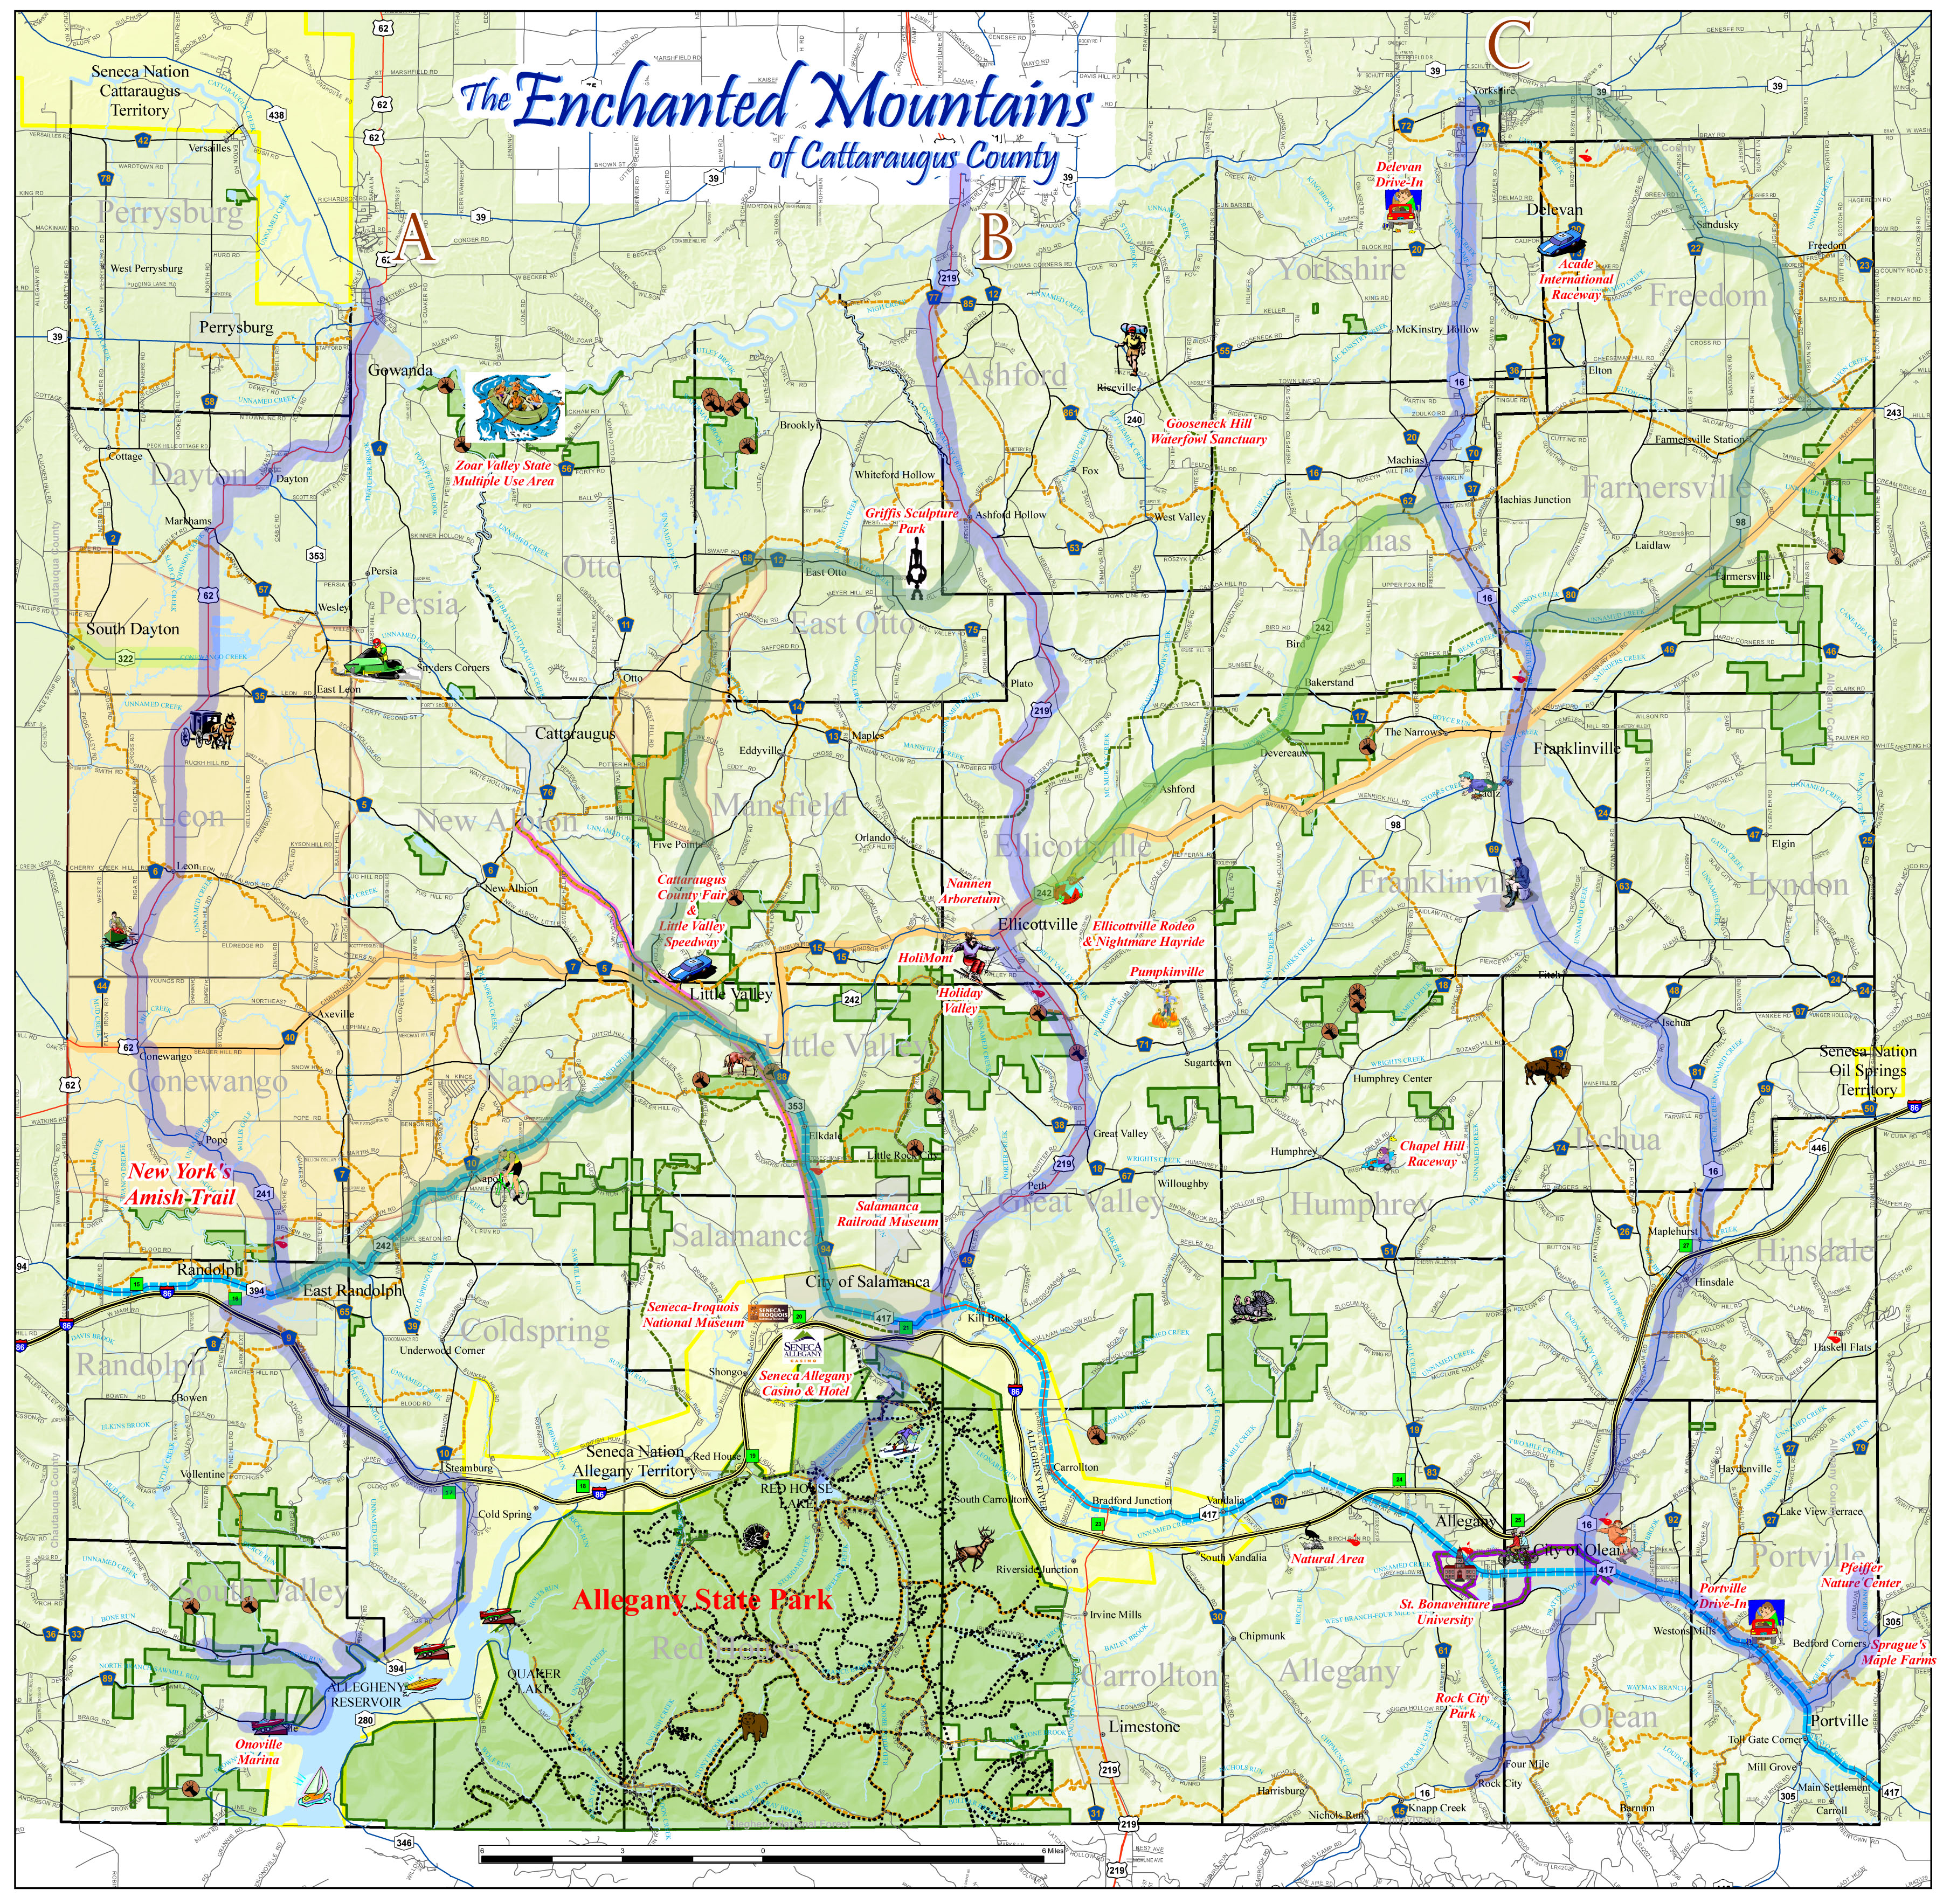 cattaraugus county Landwatch has 129 land for sale listings in cattaraugus county, ny view listing photos, contact sellers, and use filters to find land for sale | landwatch.